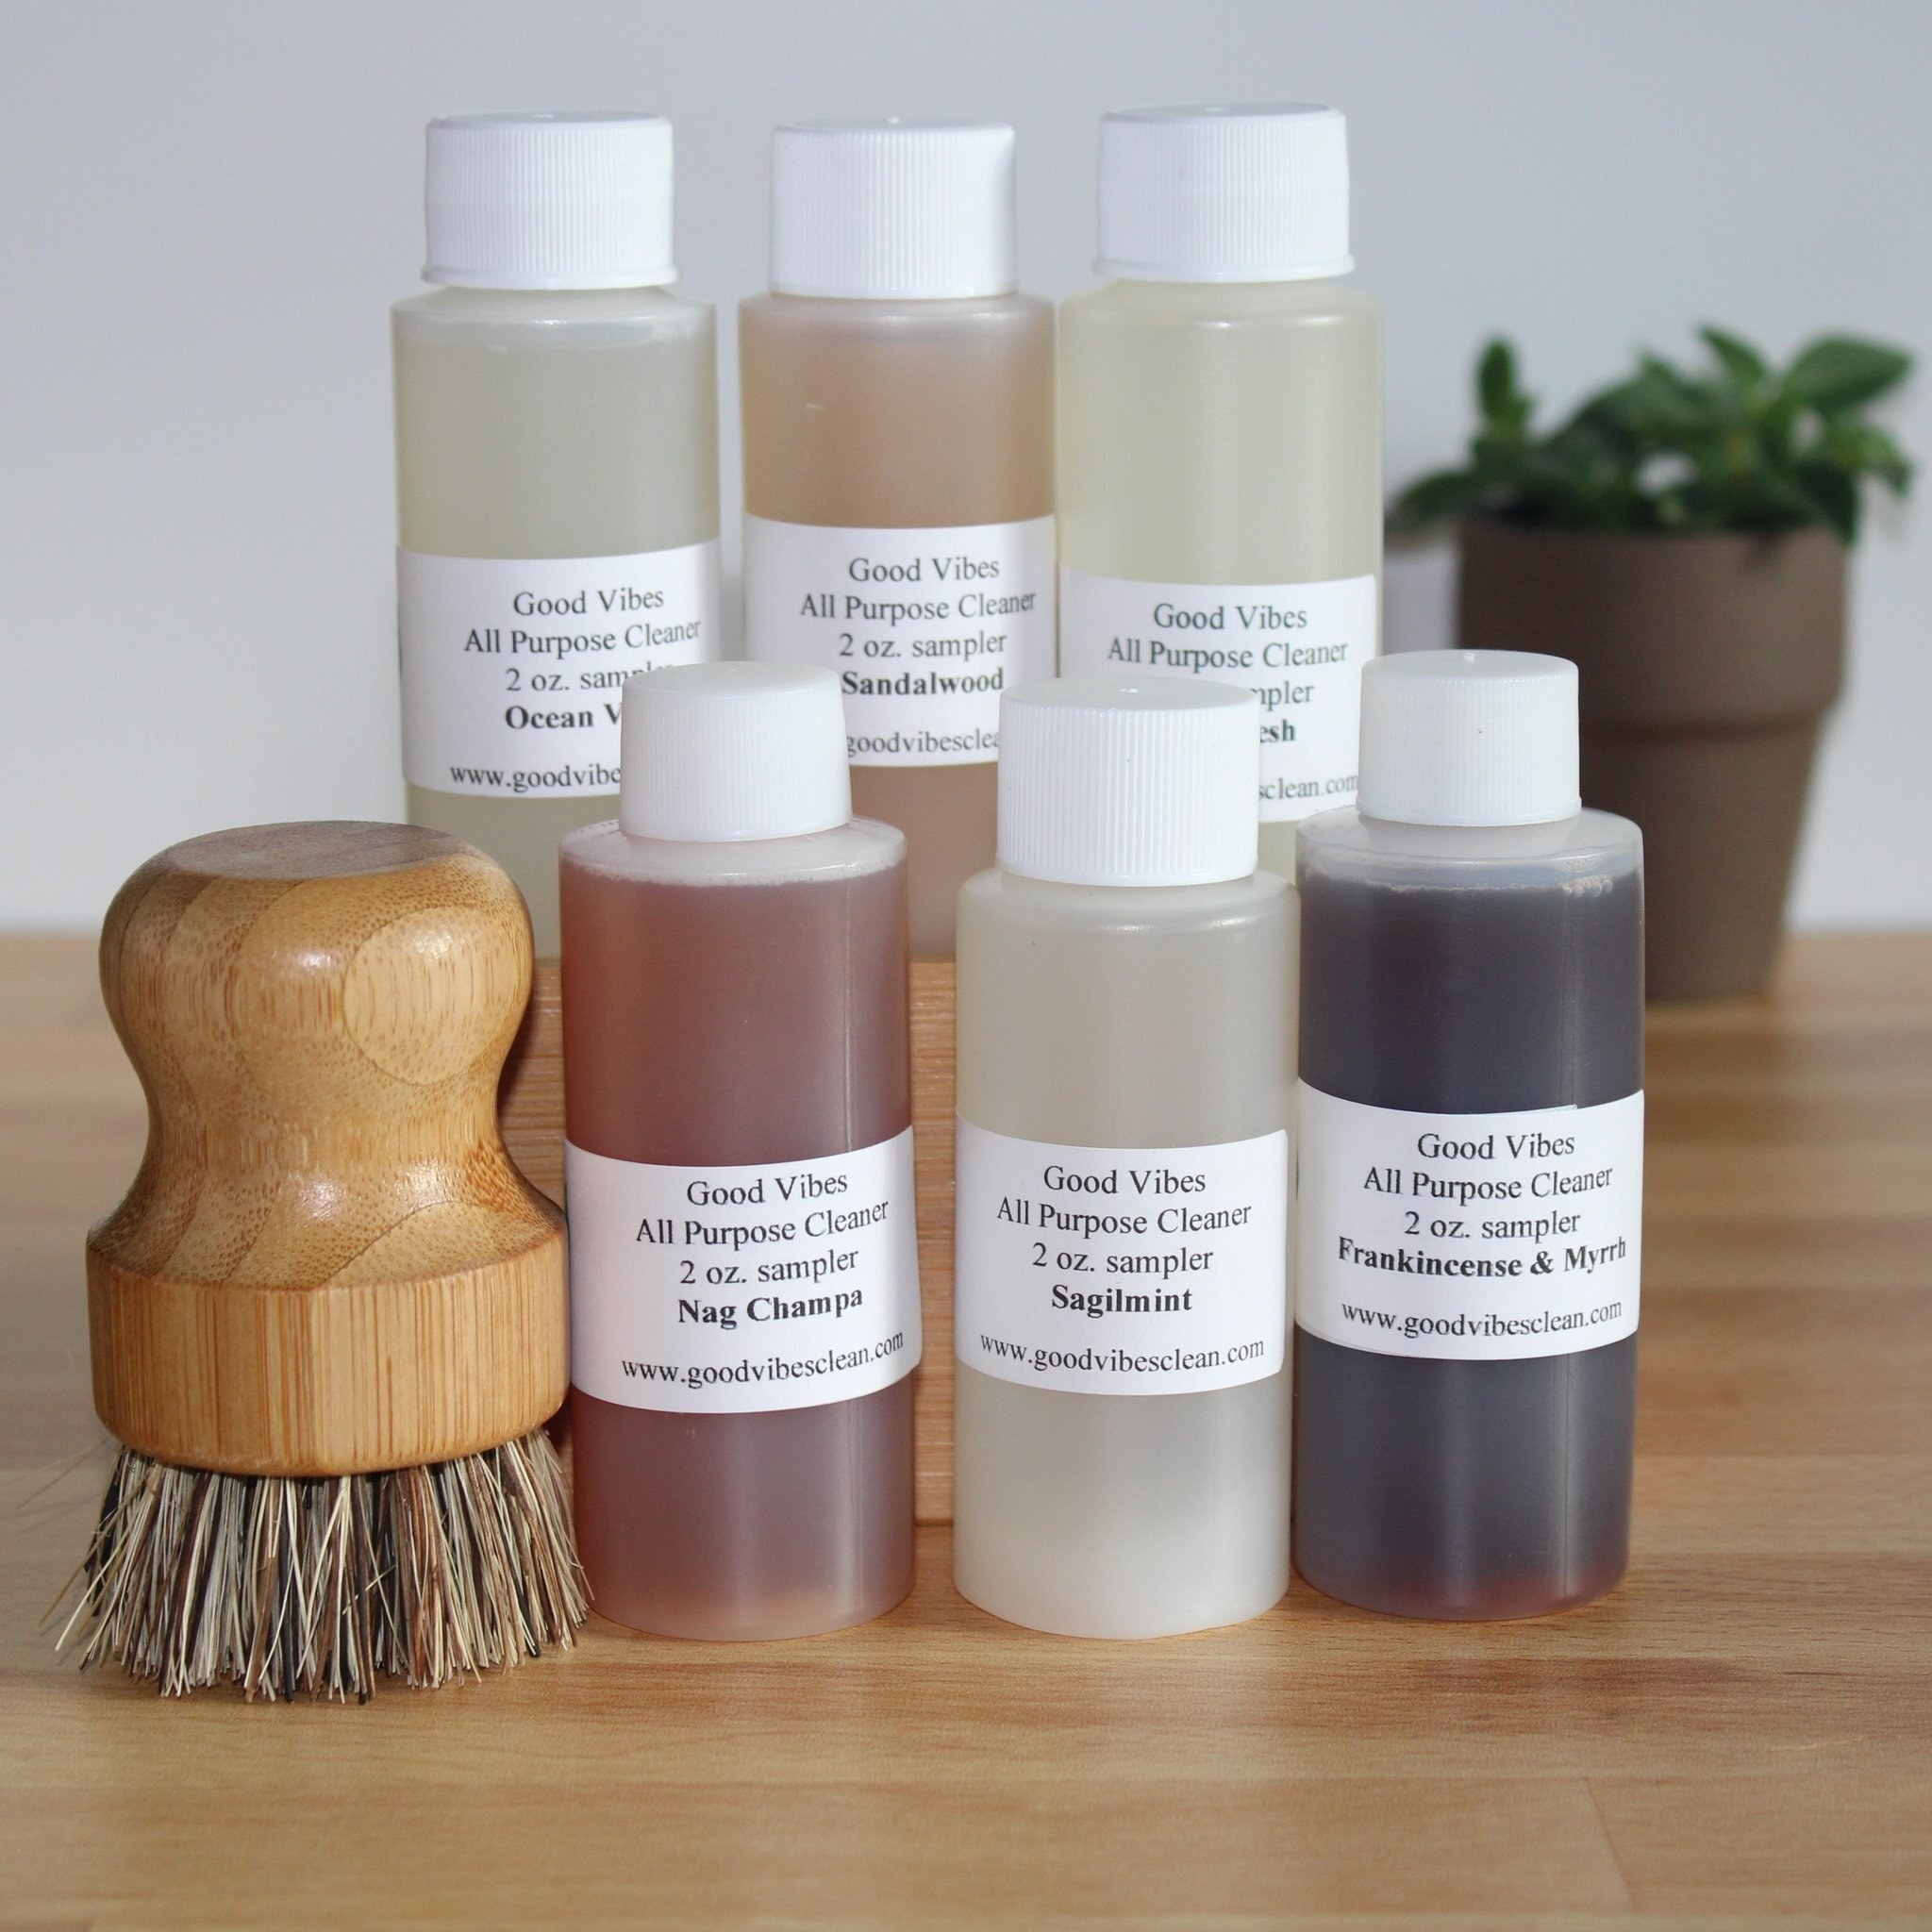 Several bottles of cleaning products in small bottles